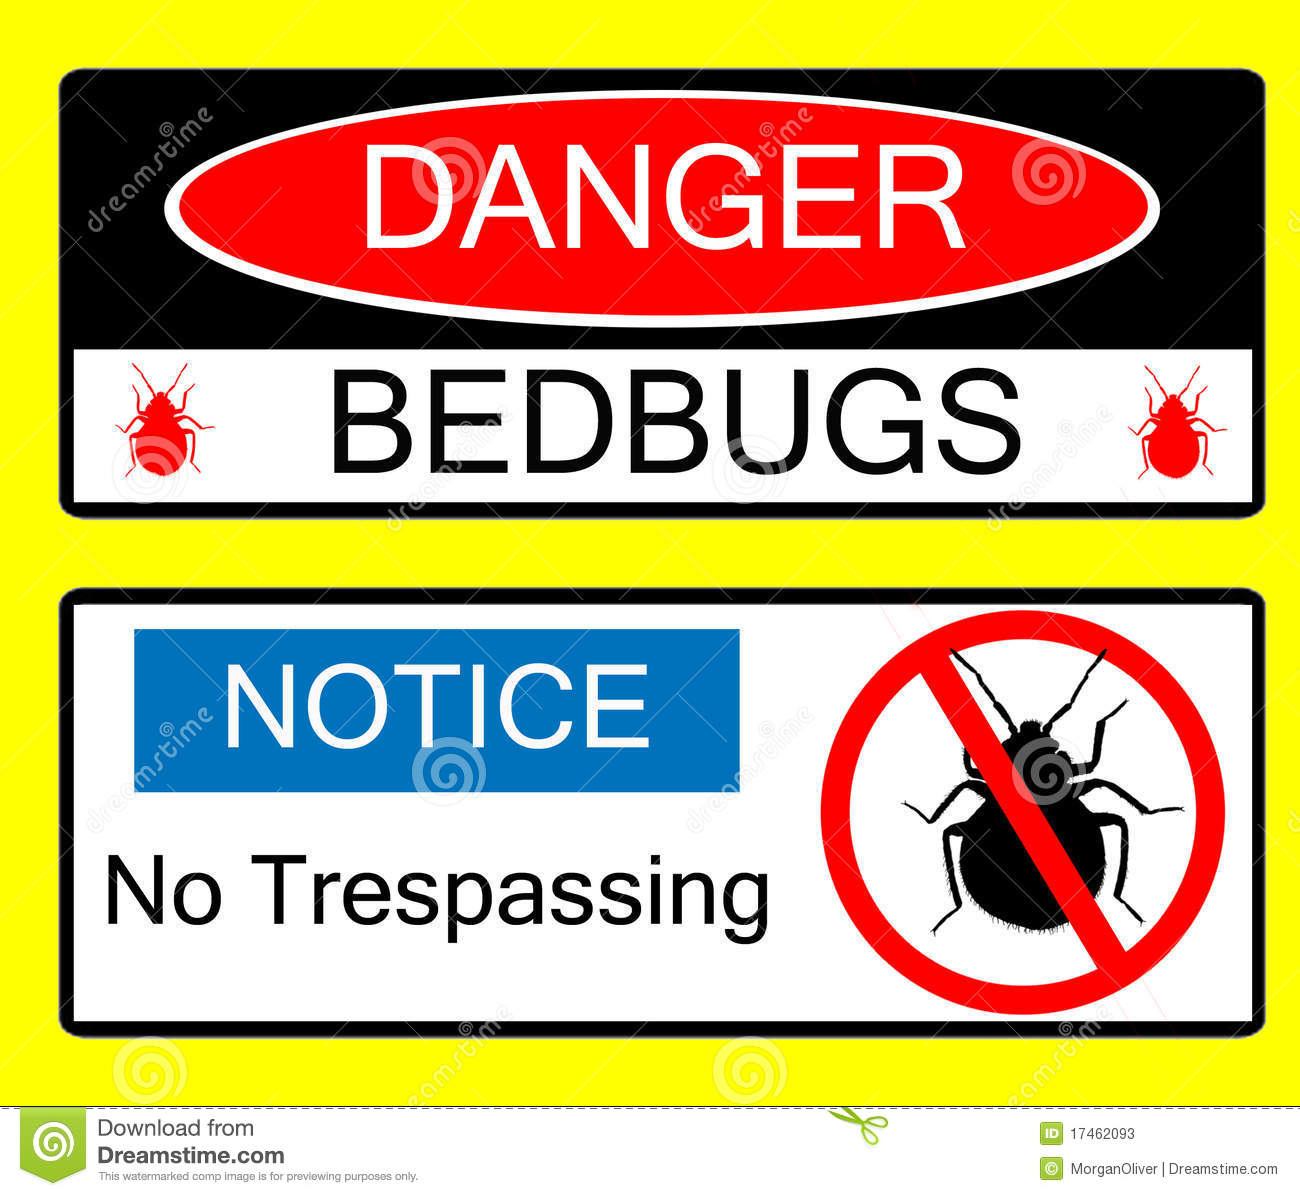 environmental bugs wayne control get healthy county health allen of pest bed homes fort department informed hazards bedbug signs